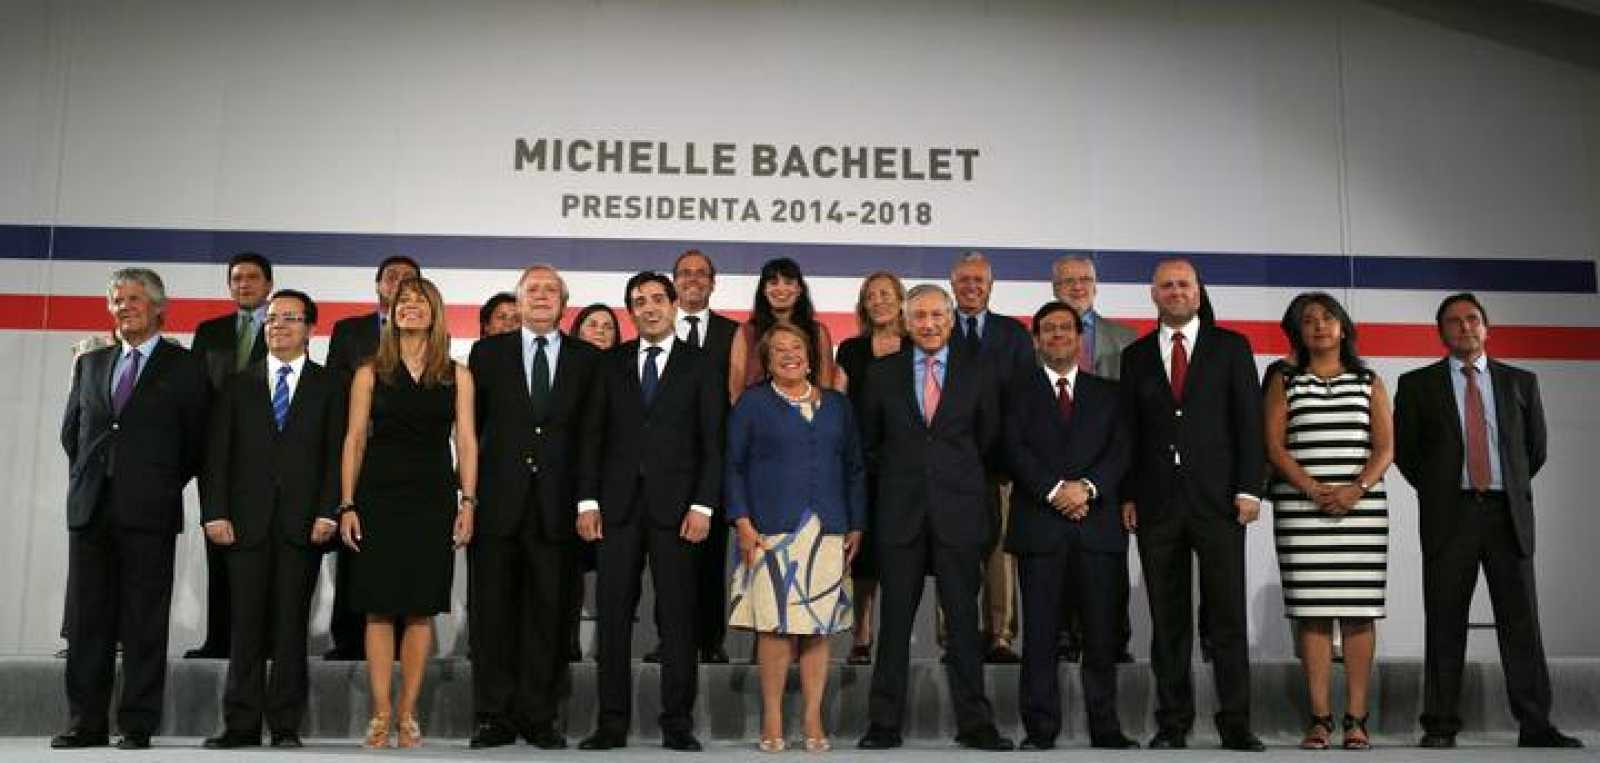 Chile's President-elect Michelle Bachelet poses with members of her Ministerial Cabinet at Santiago